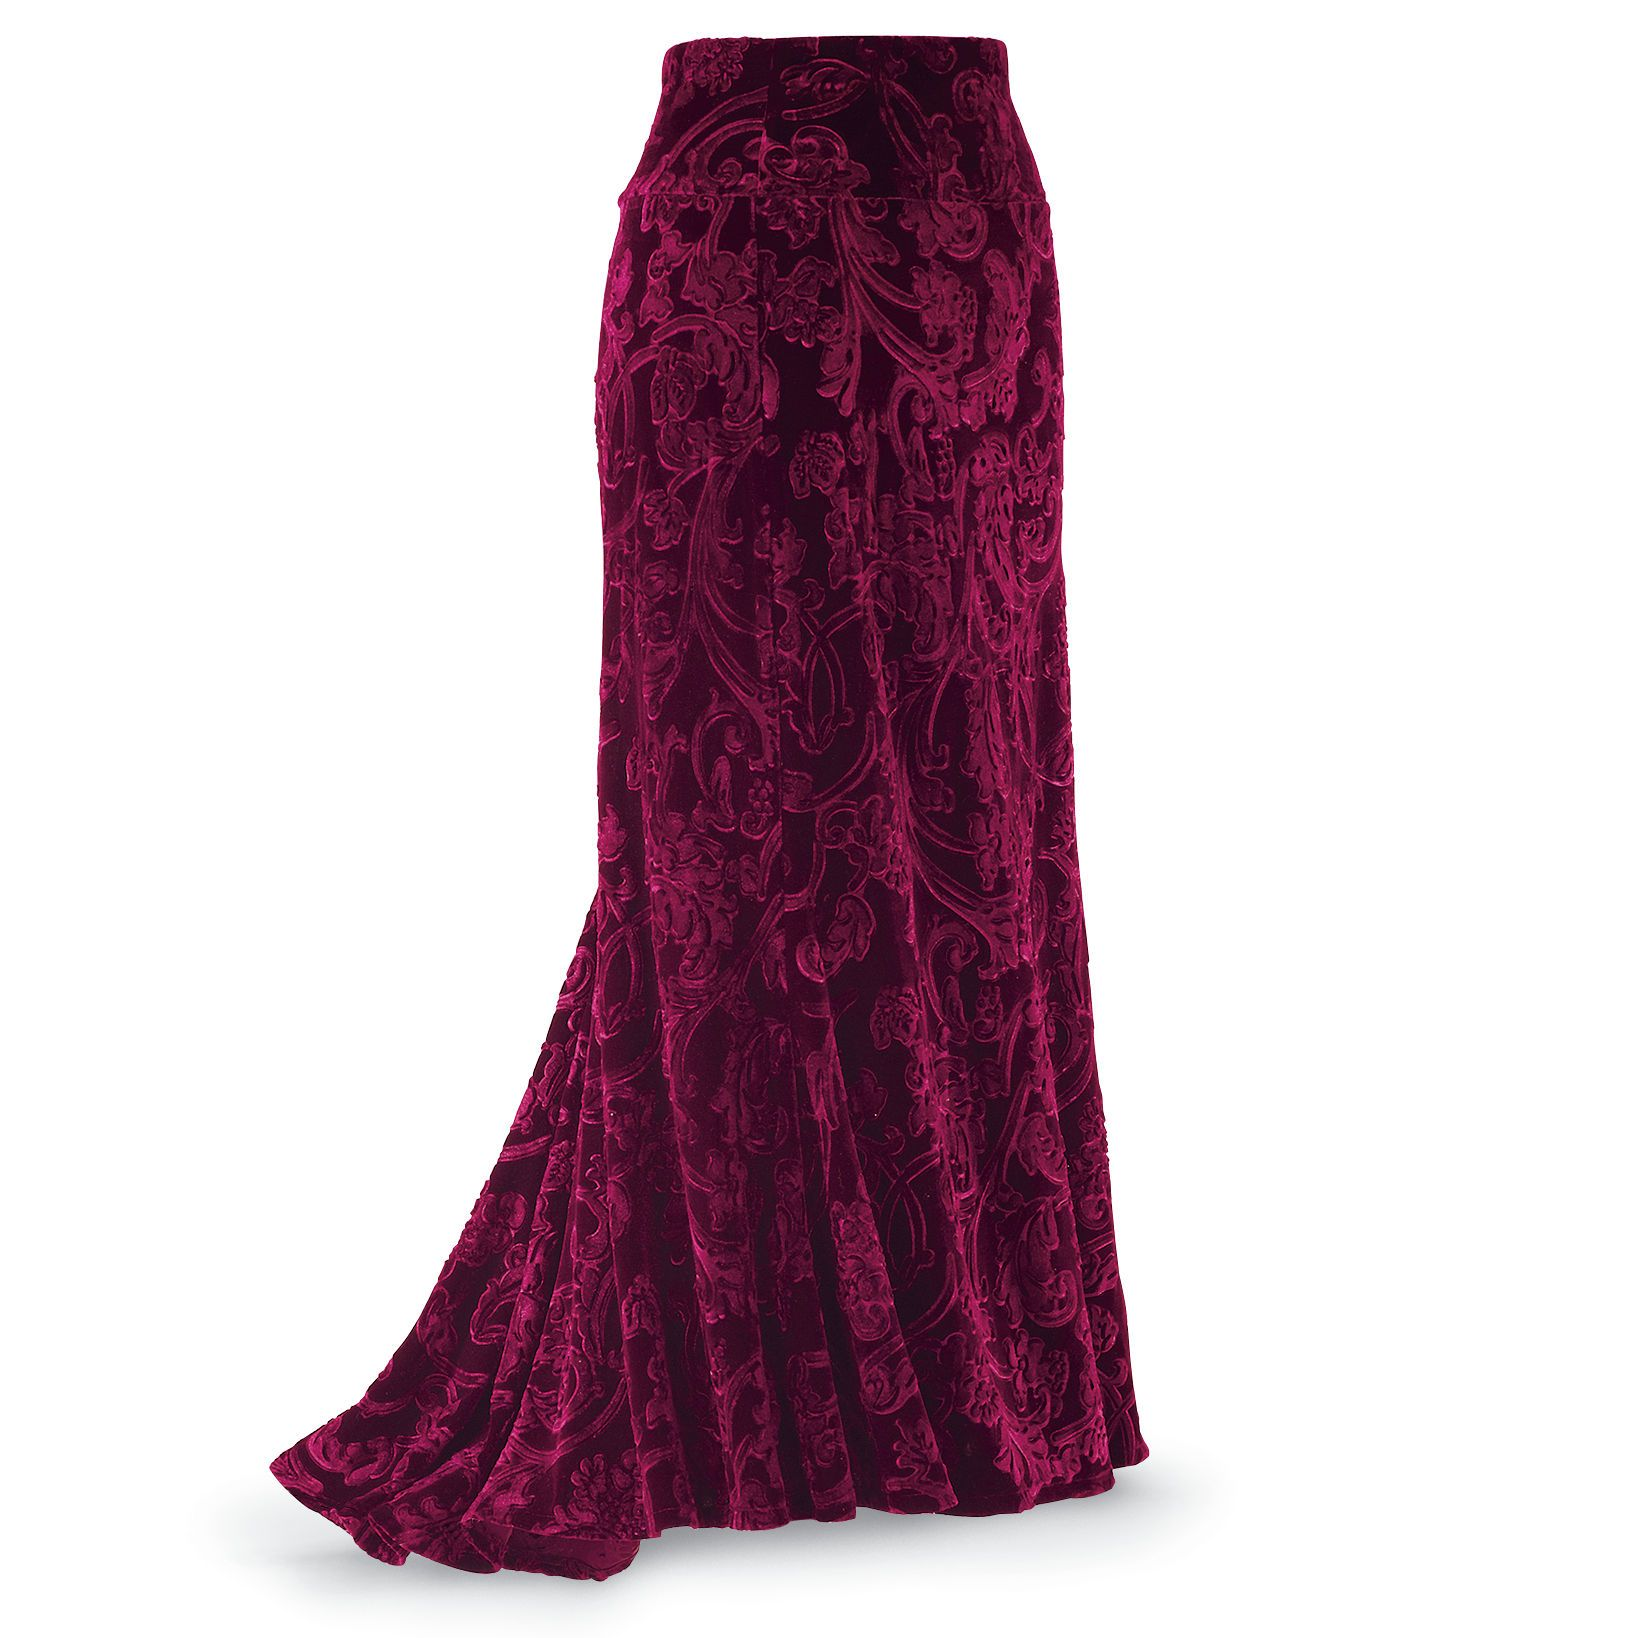 f7f808a1f1 Excuse me while I go find some sort of event to attend so I could justify  this skirt.